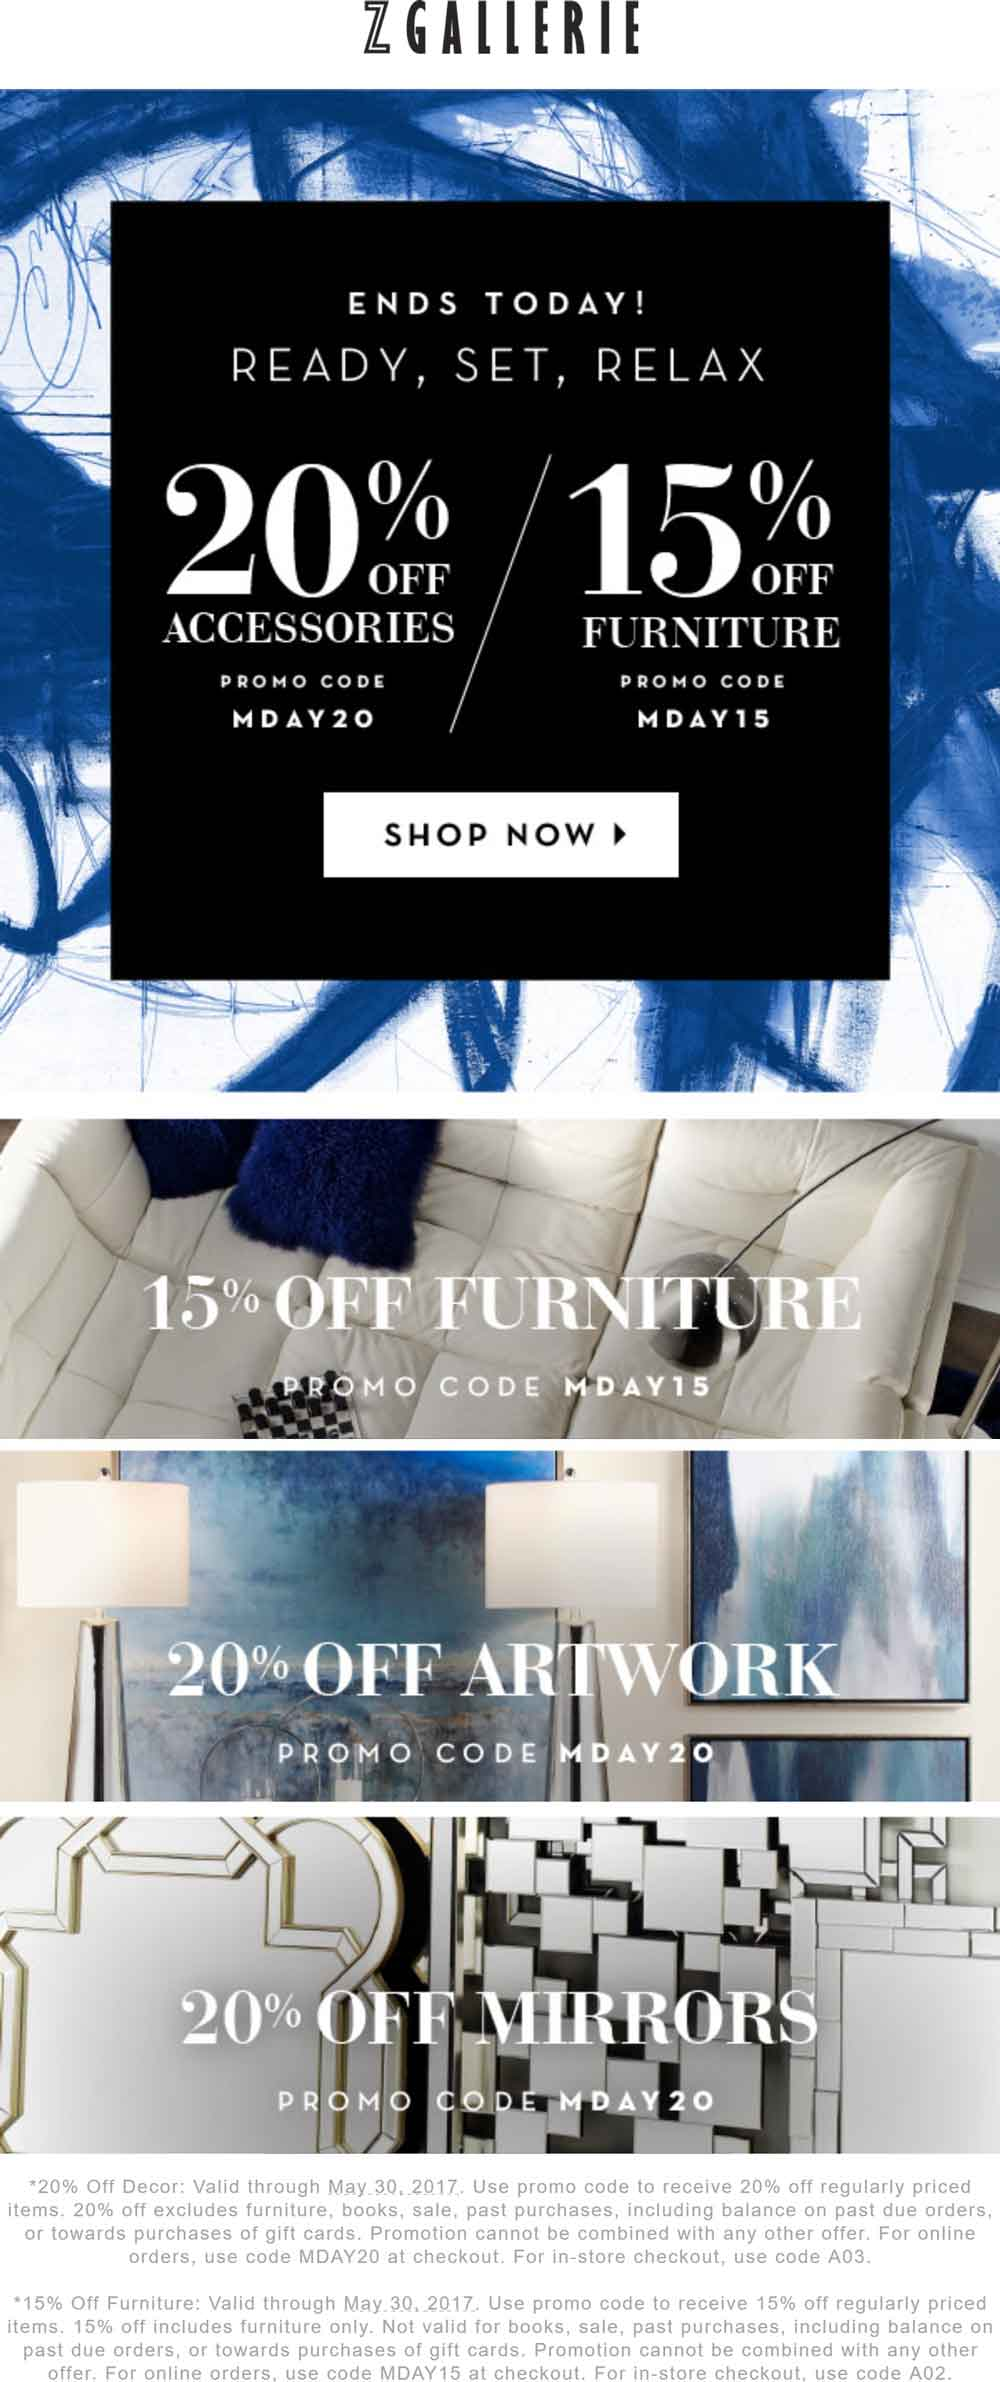 z gallerie coupon 25 off